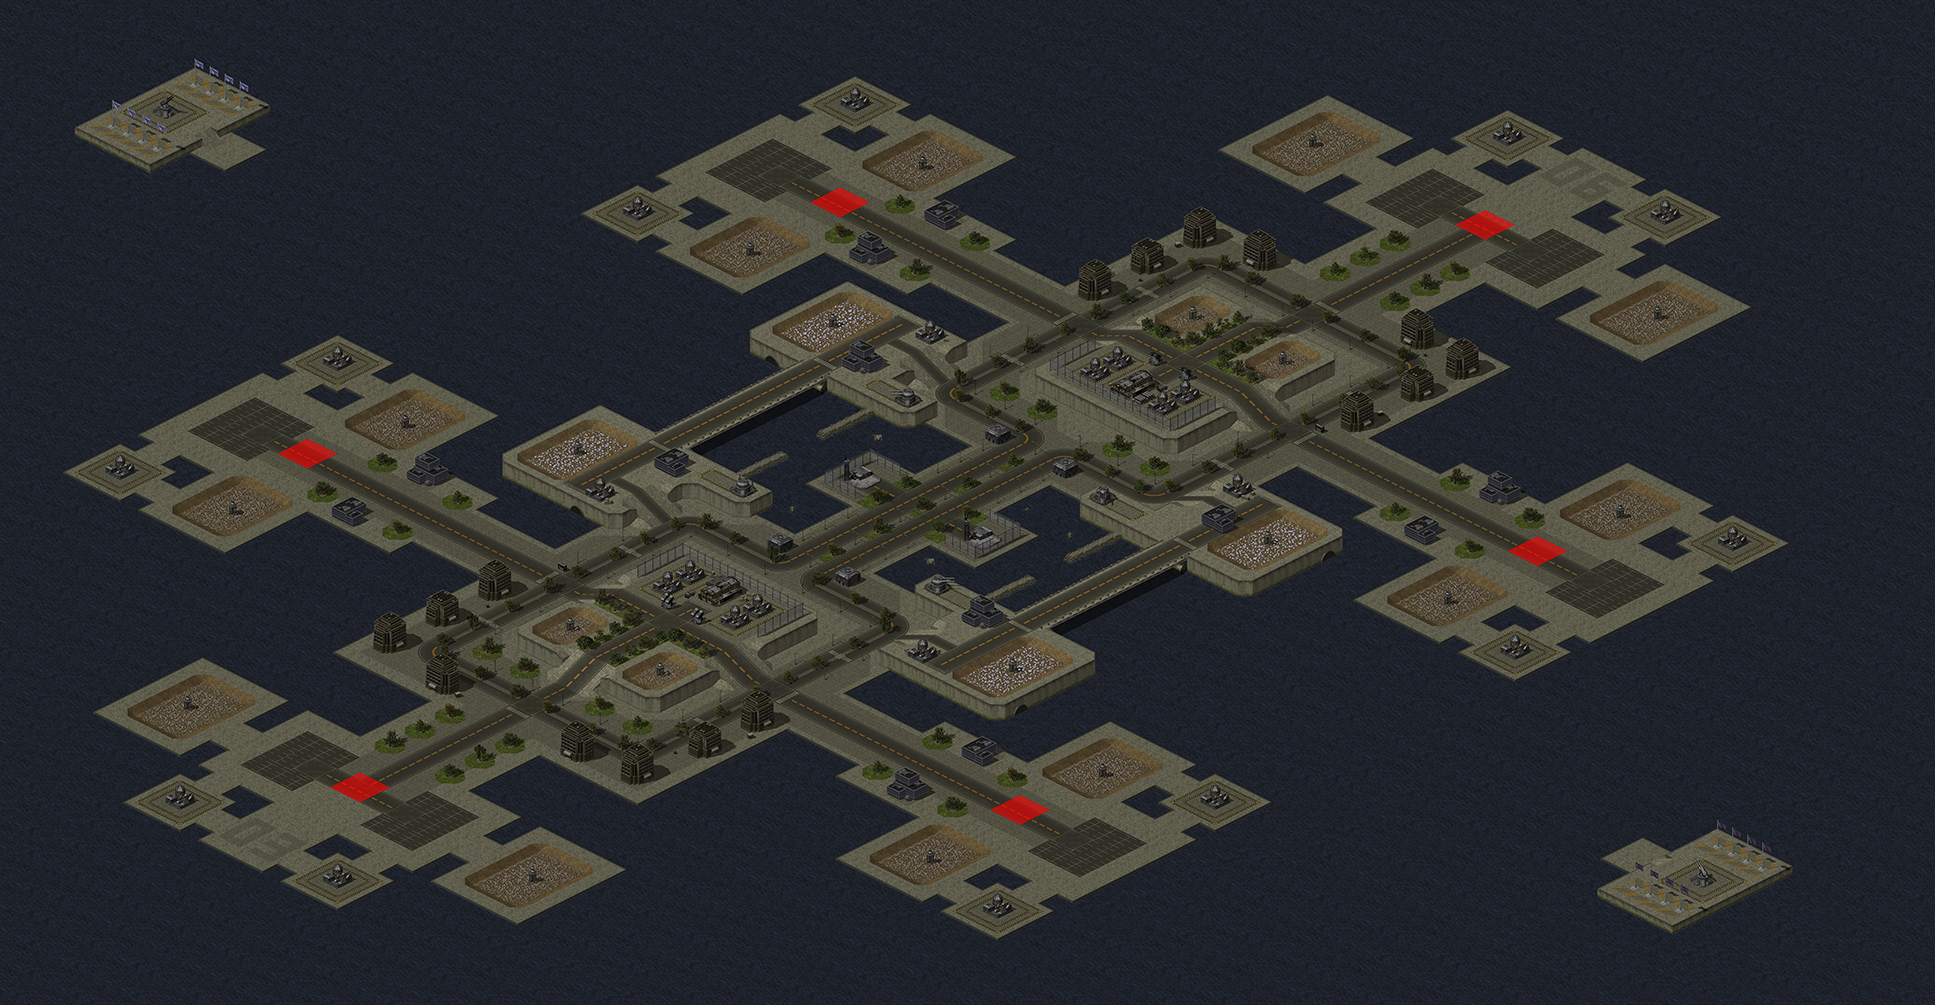 Map Render Test image - Project Phantom mod for C&C: Yuri's Revenge on red alert 3 maps, nikos deja vu yuri maps, tiberian sun maps,